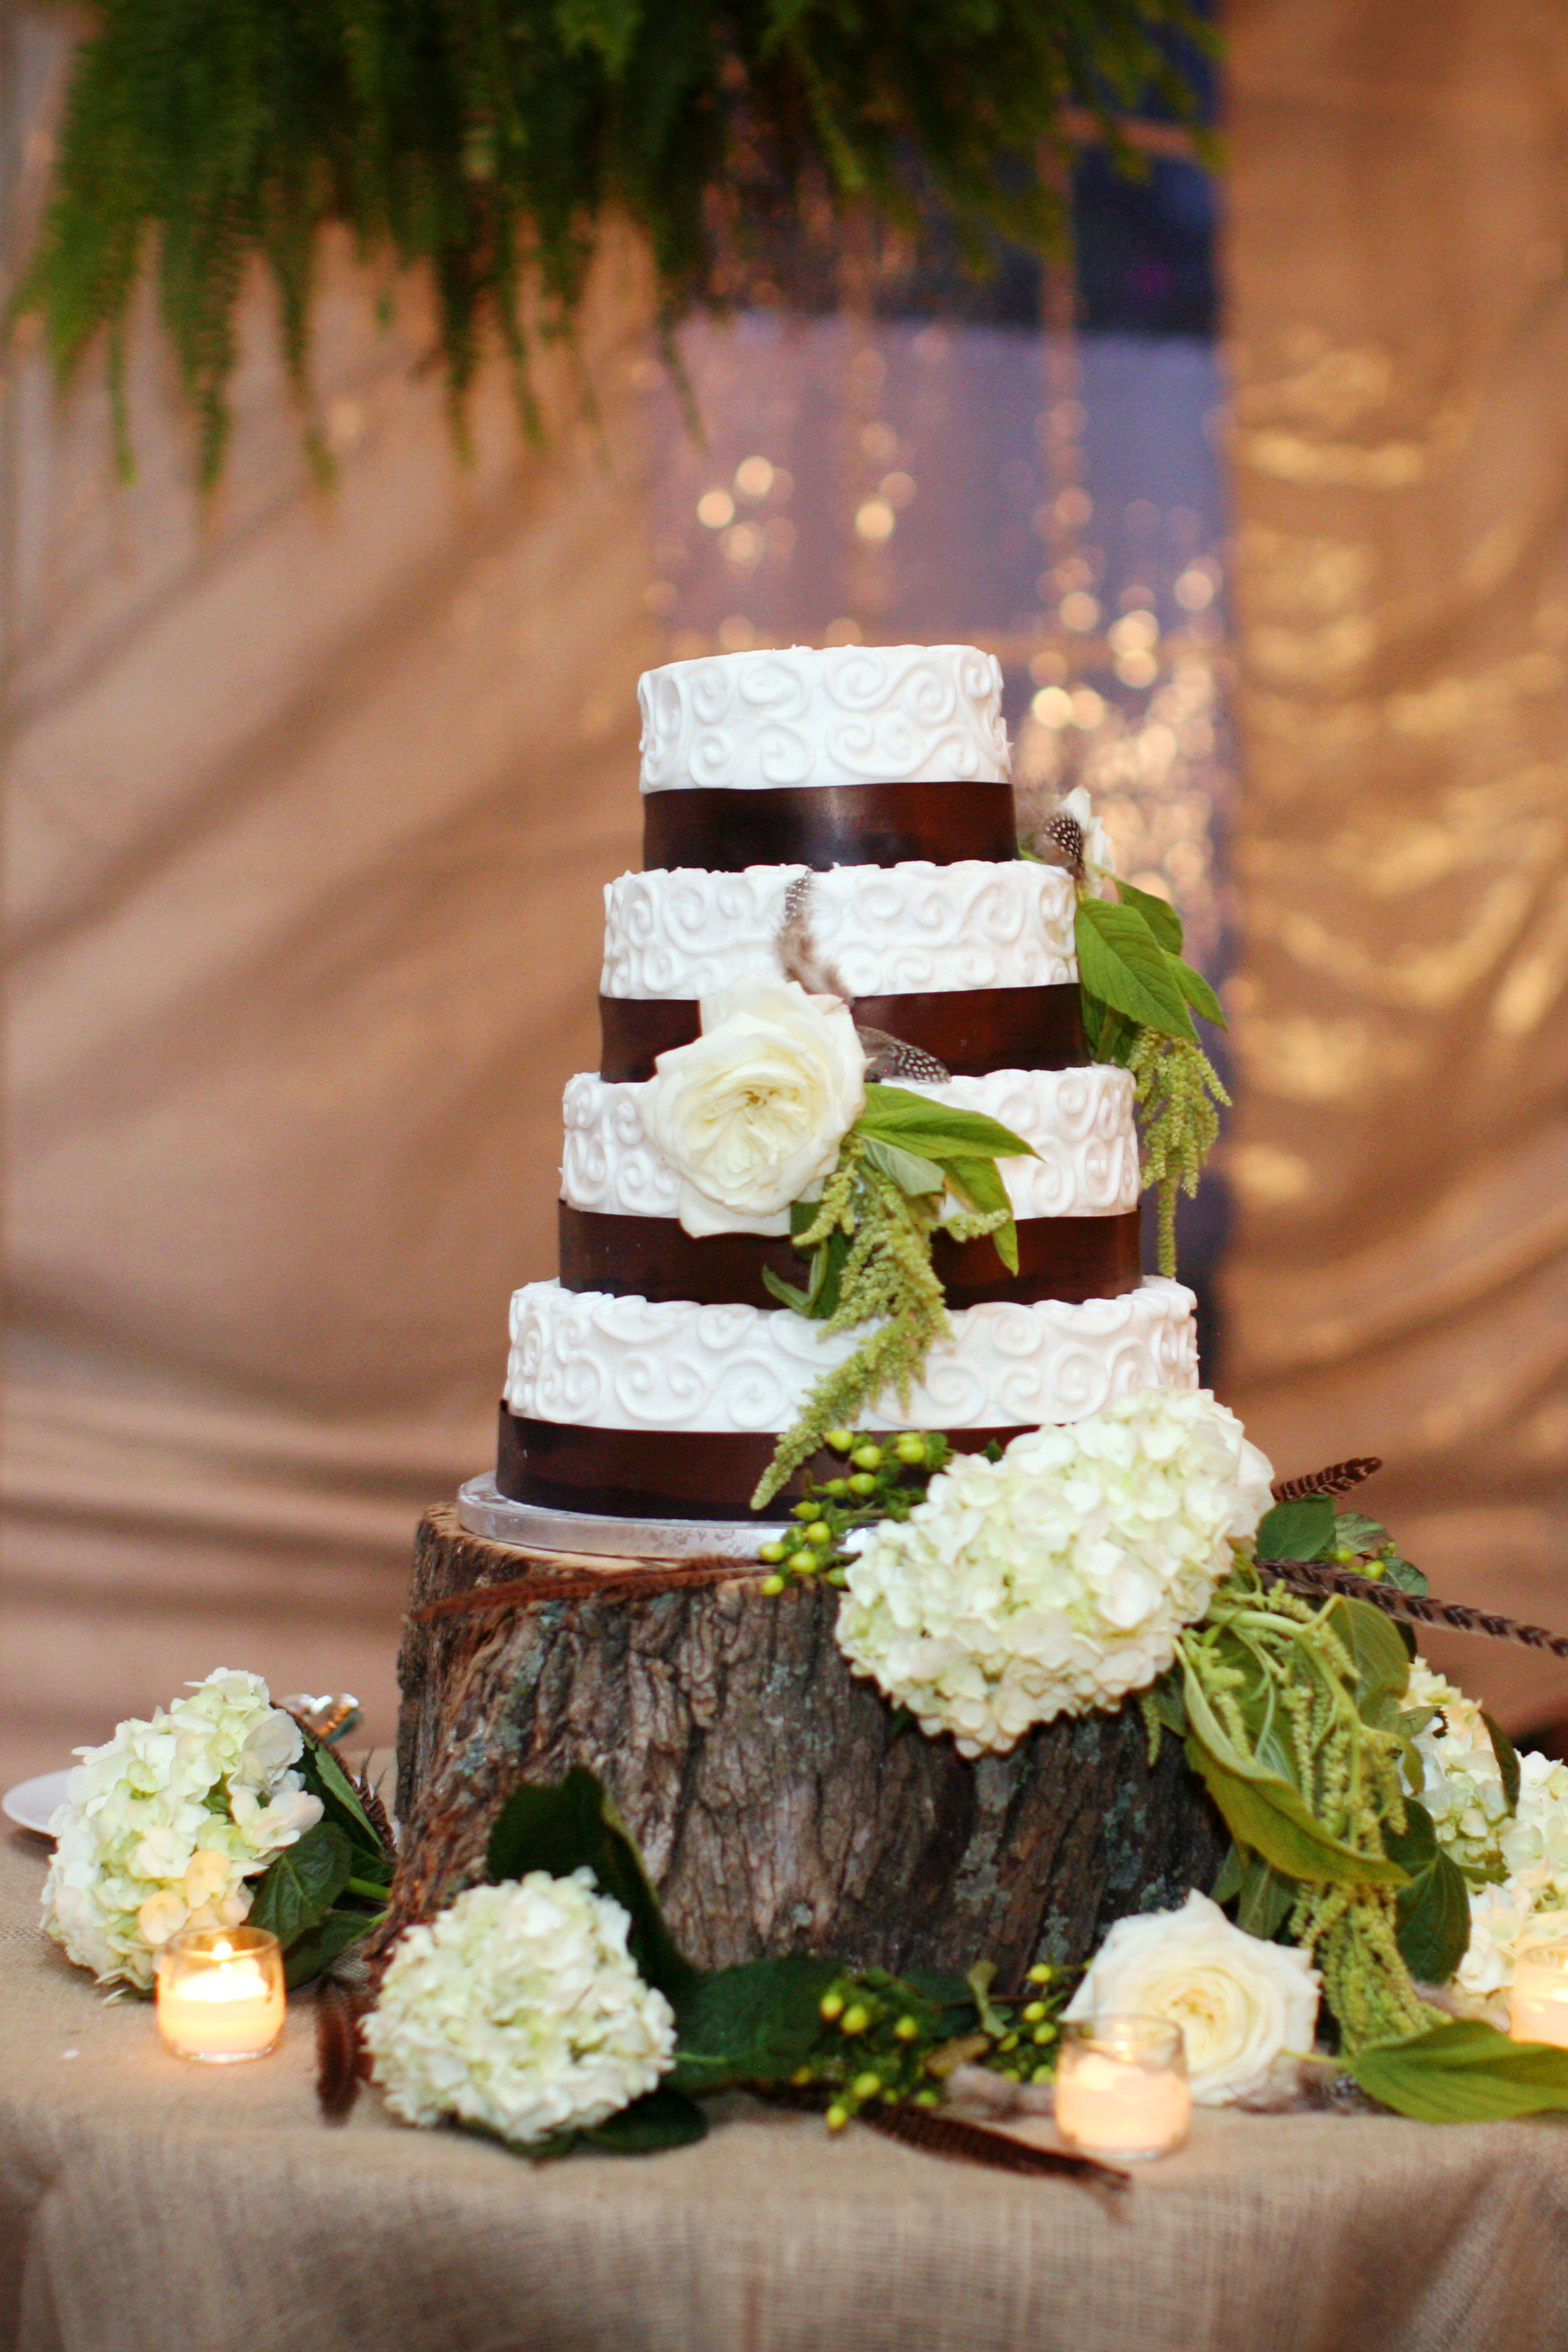 Cakes, Real Weddings, Wedding Style, Floral Wedding Cakes, Wedding Cakes, Fall Weddings, Northeast Real Weddings, Rustic Real Weddings, Fall Real Weddings, Garden Real Weddings, Garden Weddings, Rustic Weddings, rustic wedding cakes